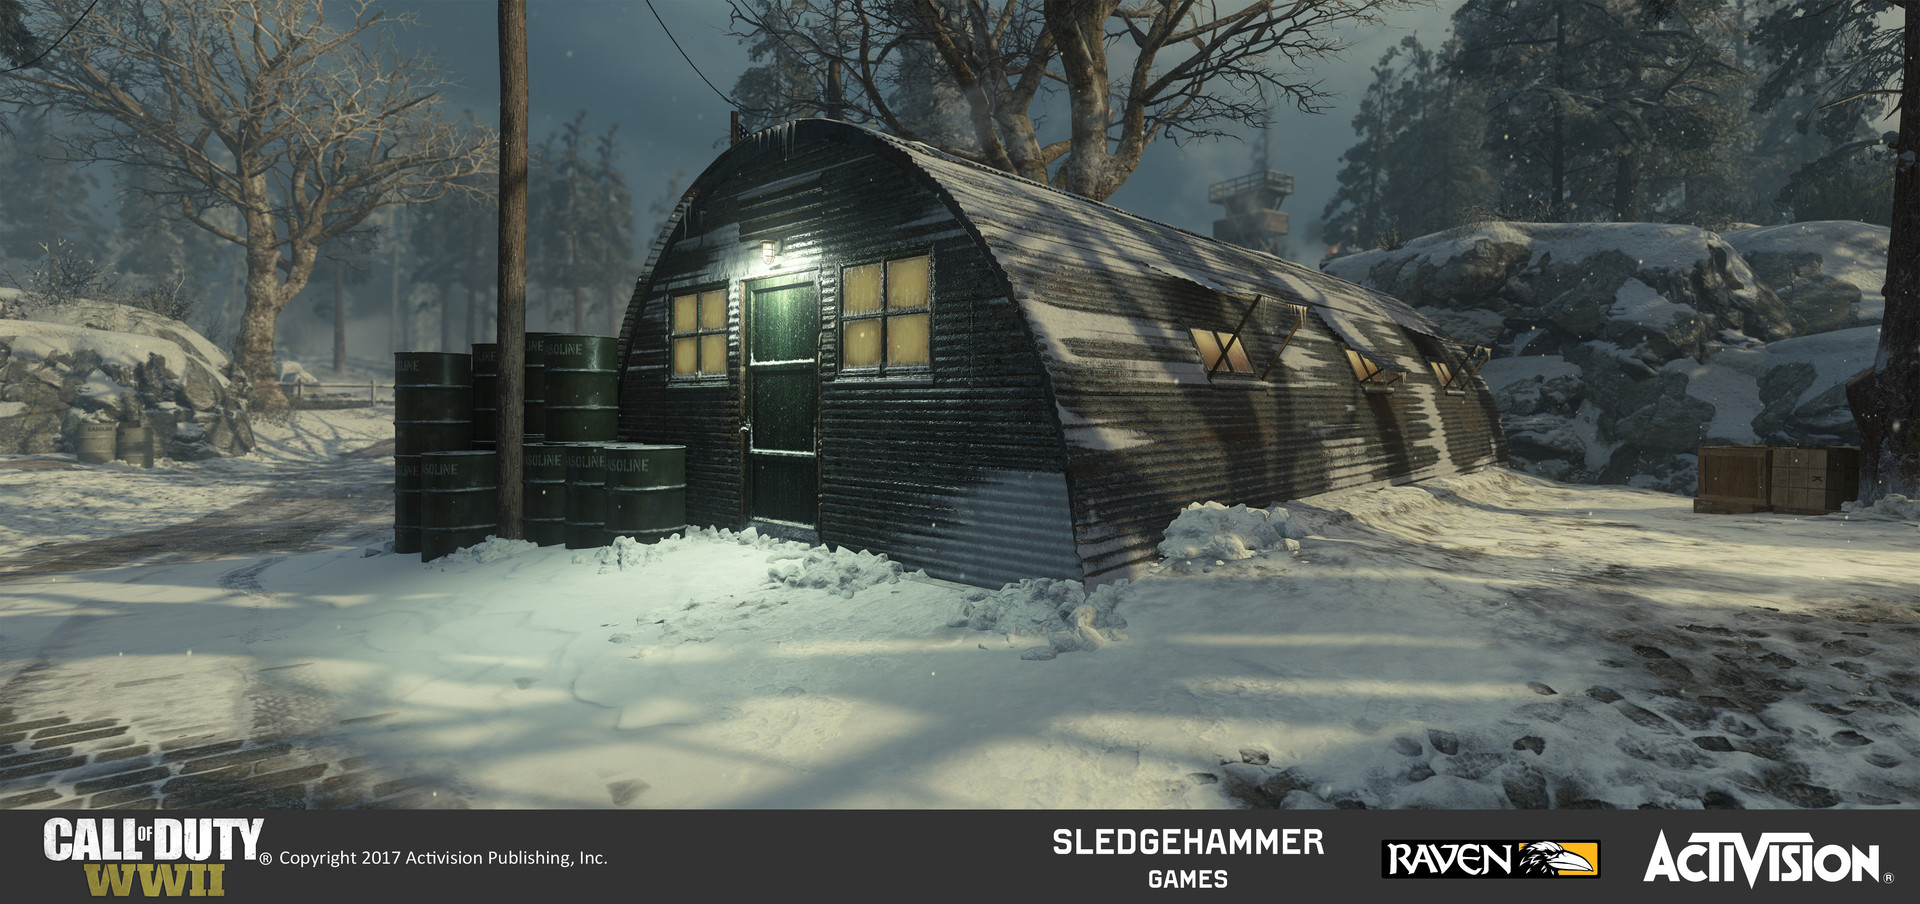 Quonset huts: Finished model of Quonset hut model in map after creating and painting its materials in Substance painter. Also responsible for terrain work in entire area around it.